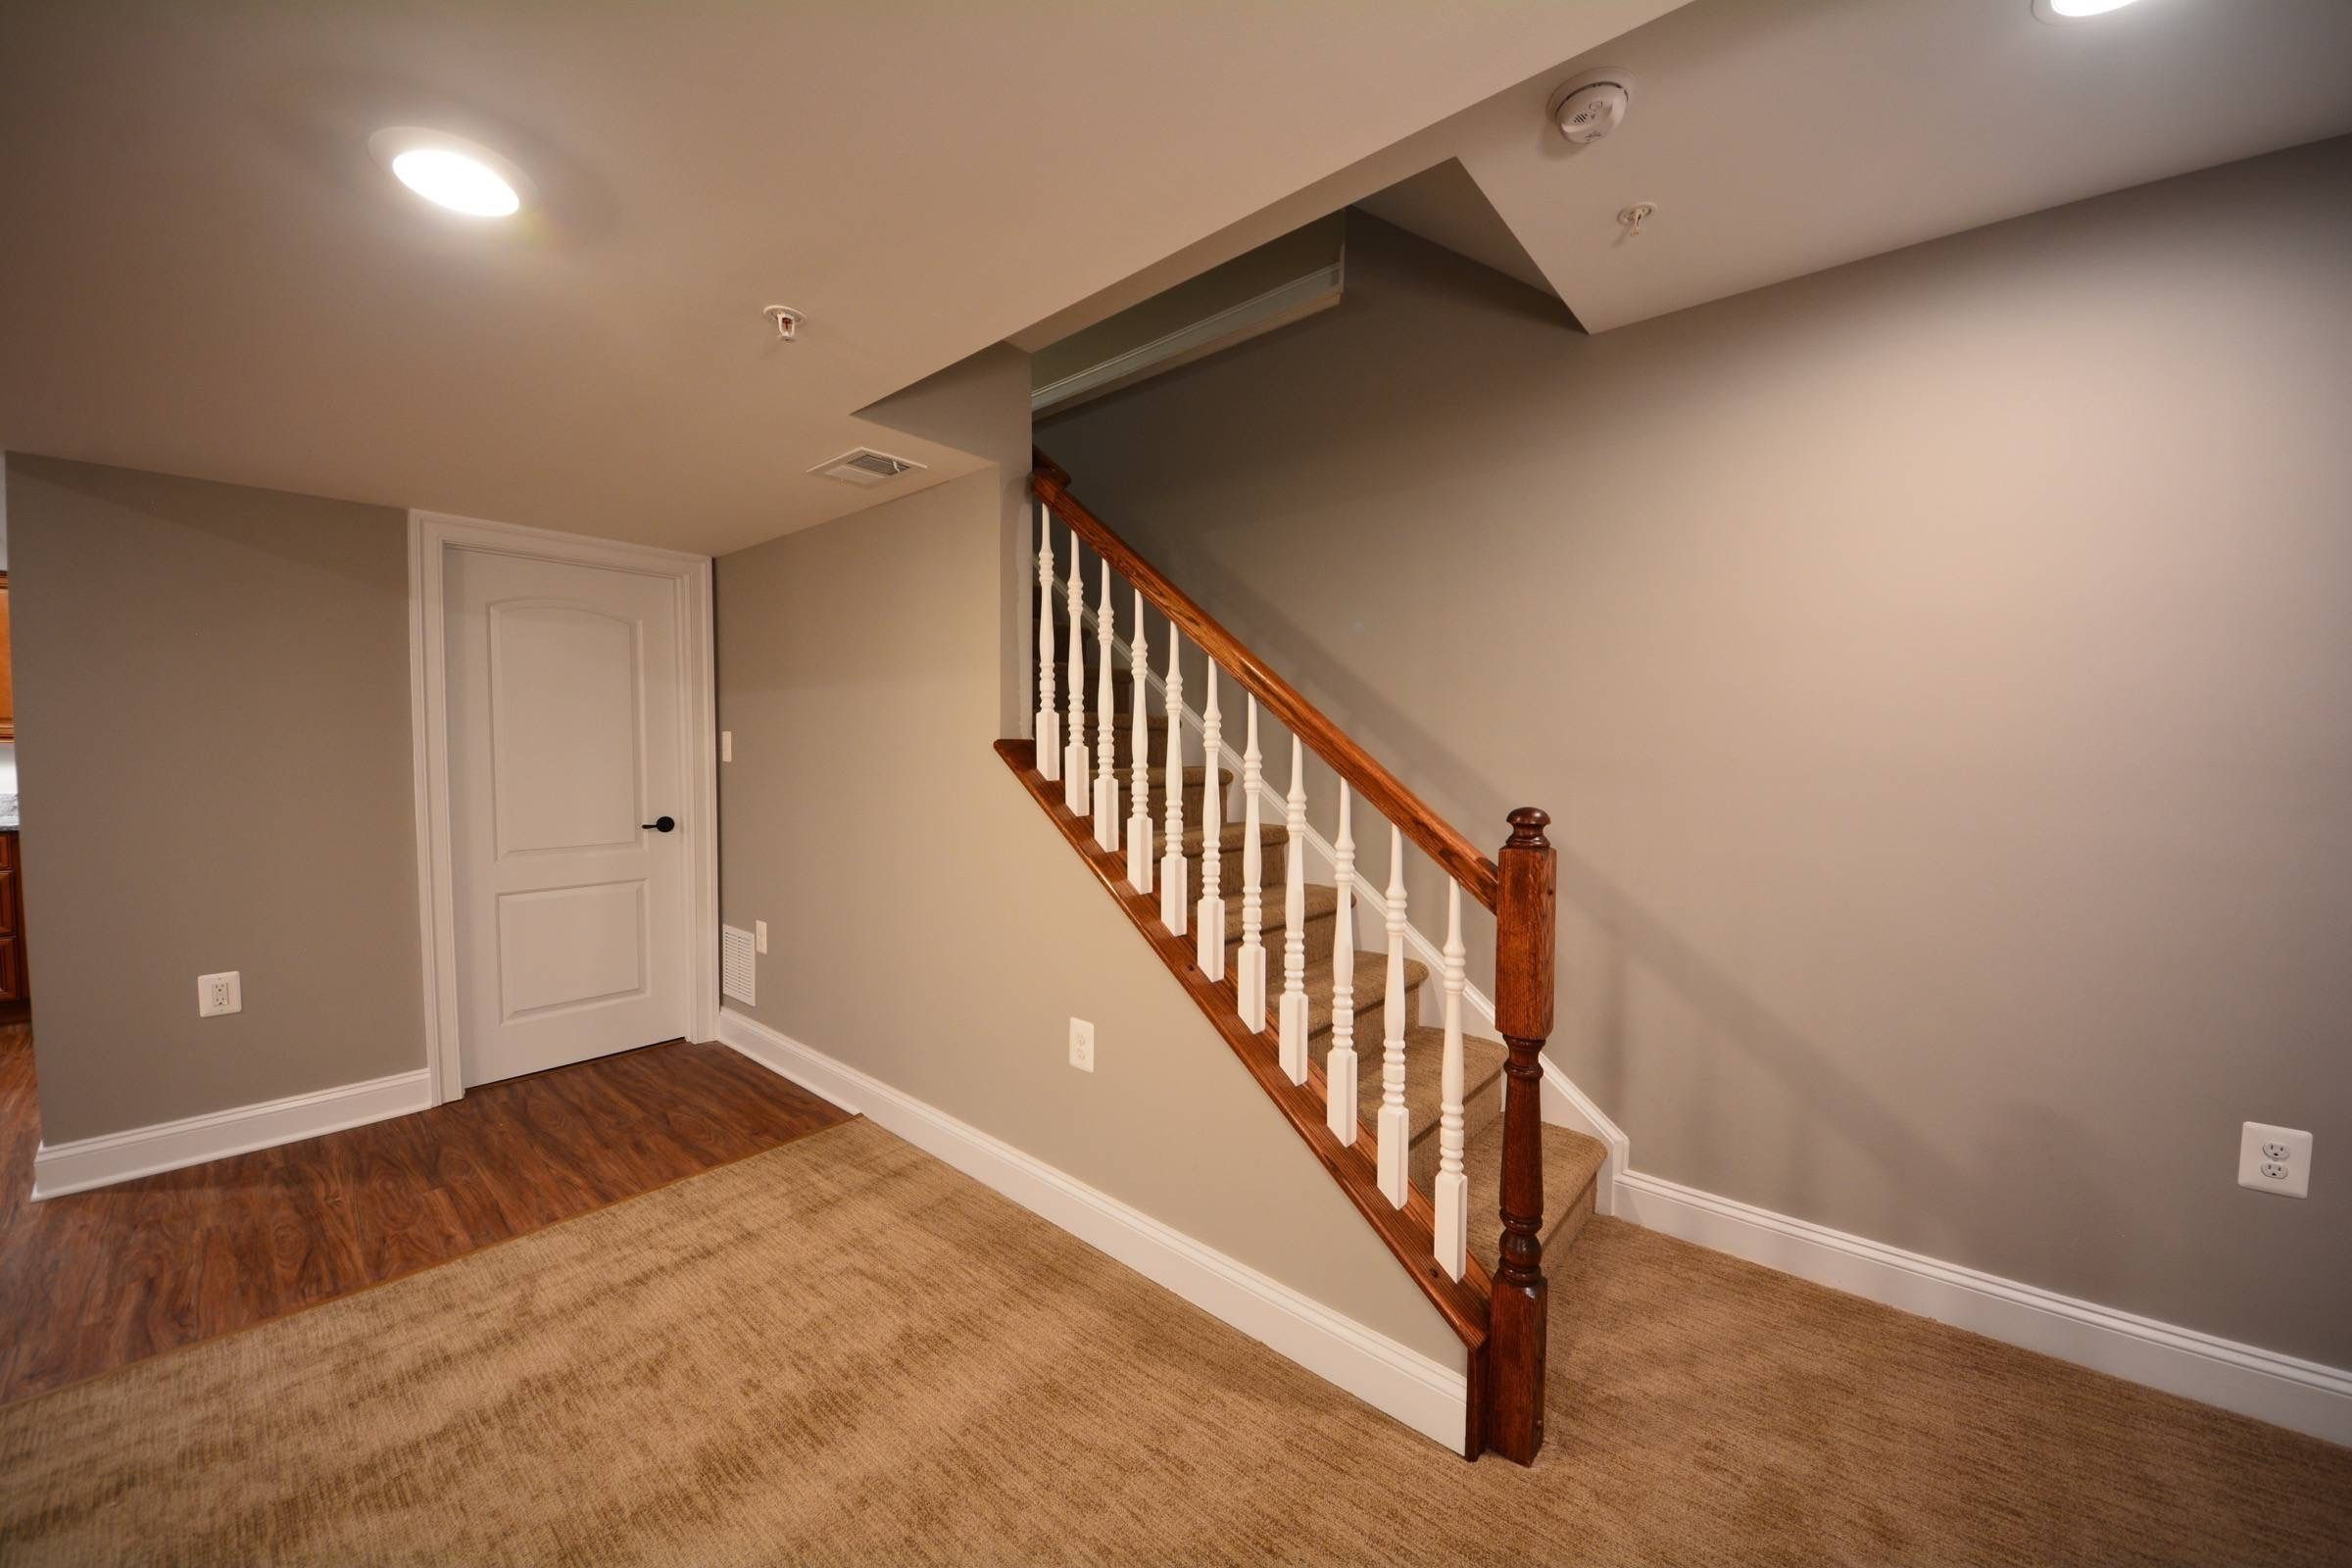 Basement Stairs Ideas Stair Railings And Half Walls Ideas Basement Stairs